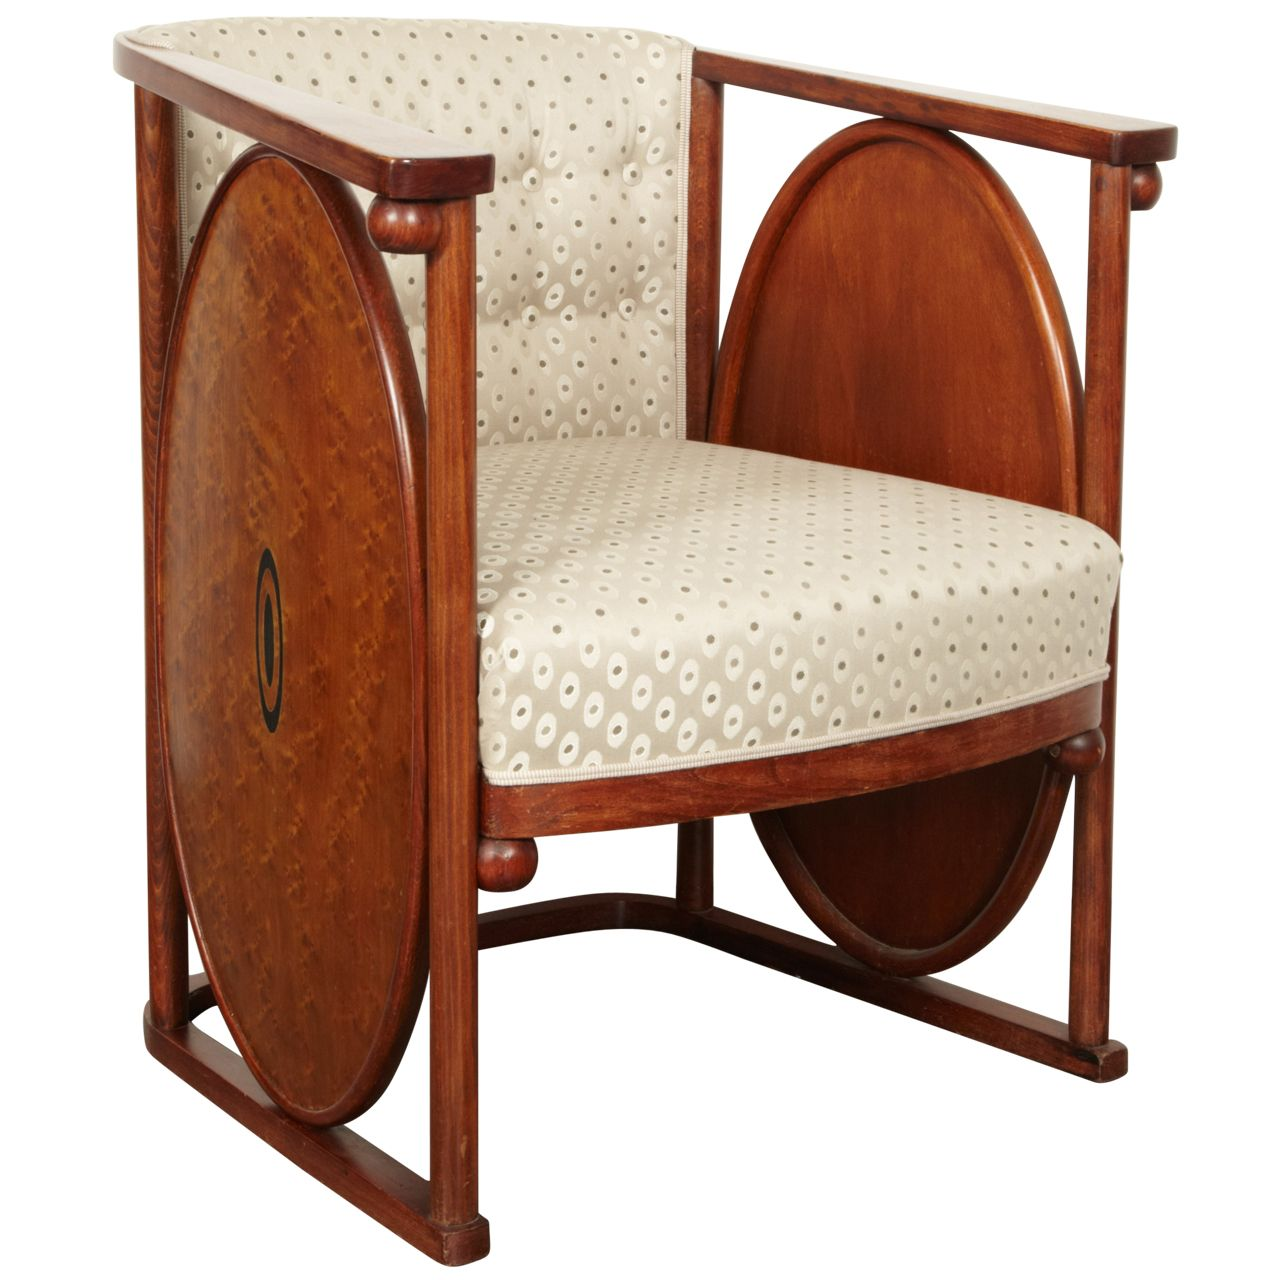 koloman moser and josef hoffmann art nouveau armchair. Black Bedroom Furniture Sets. Home Design Ideas